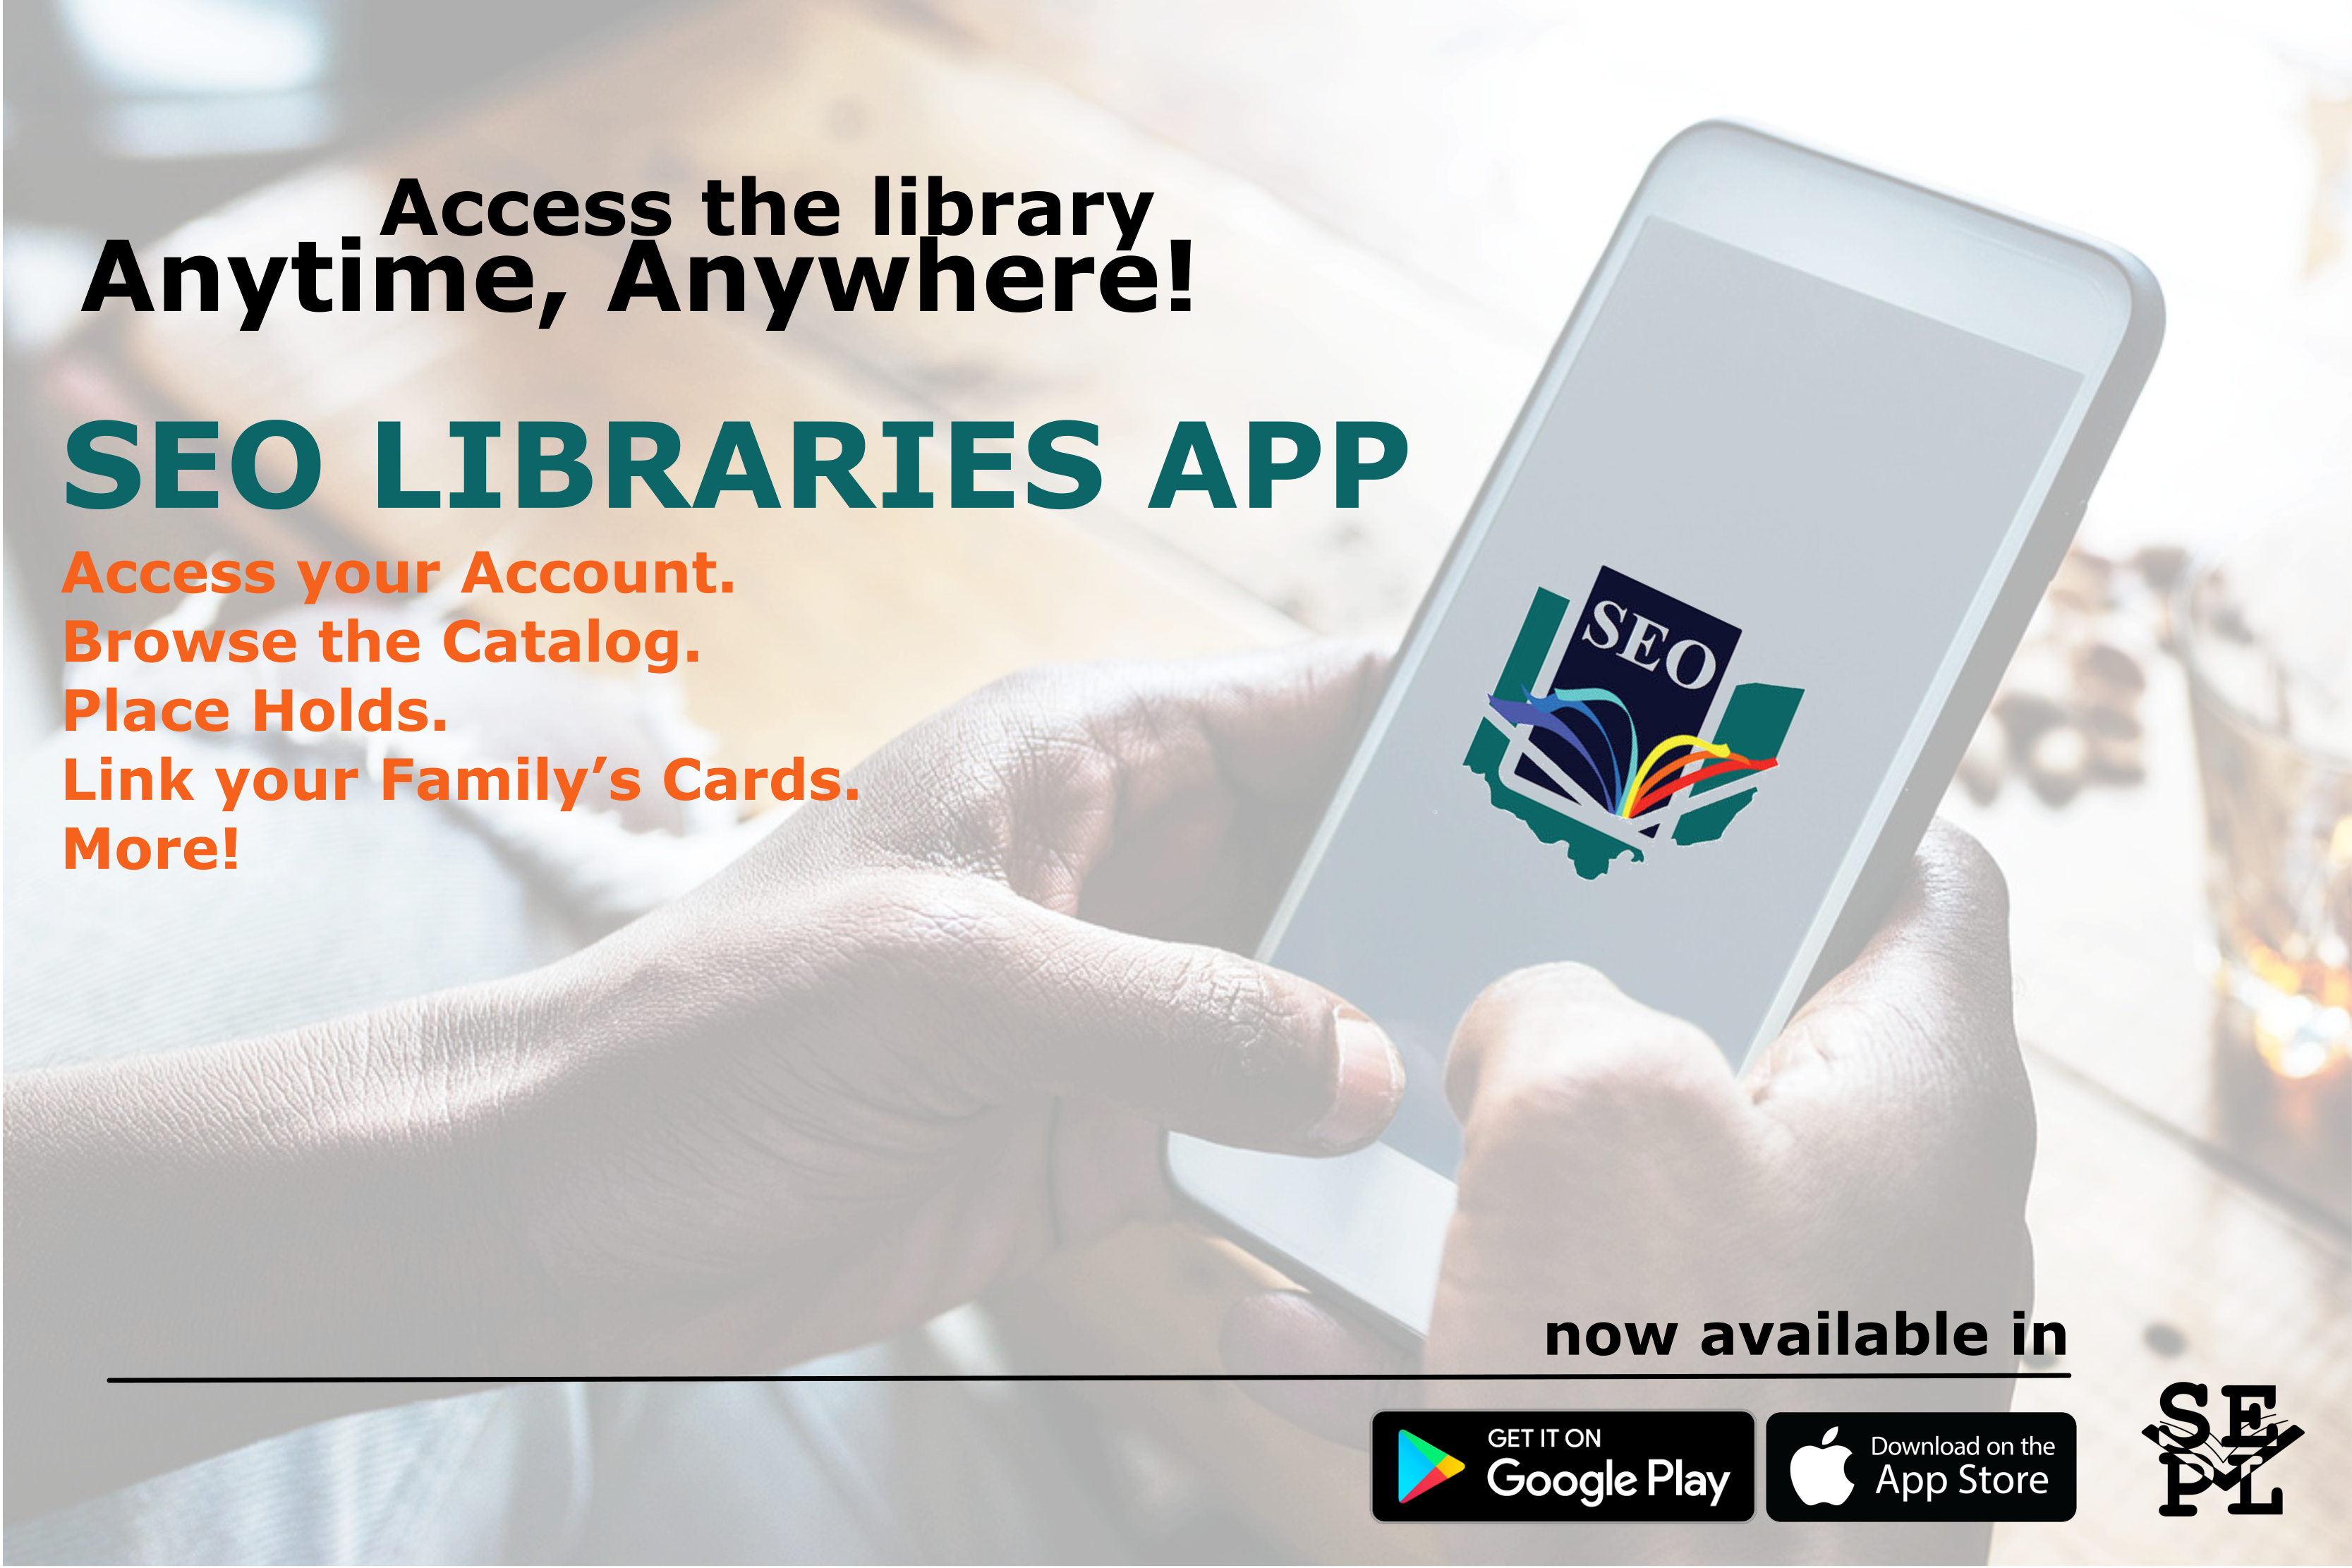 SEO Libraries App Now Available | Seneca East Public Library